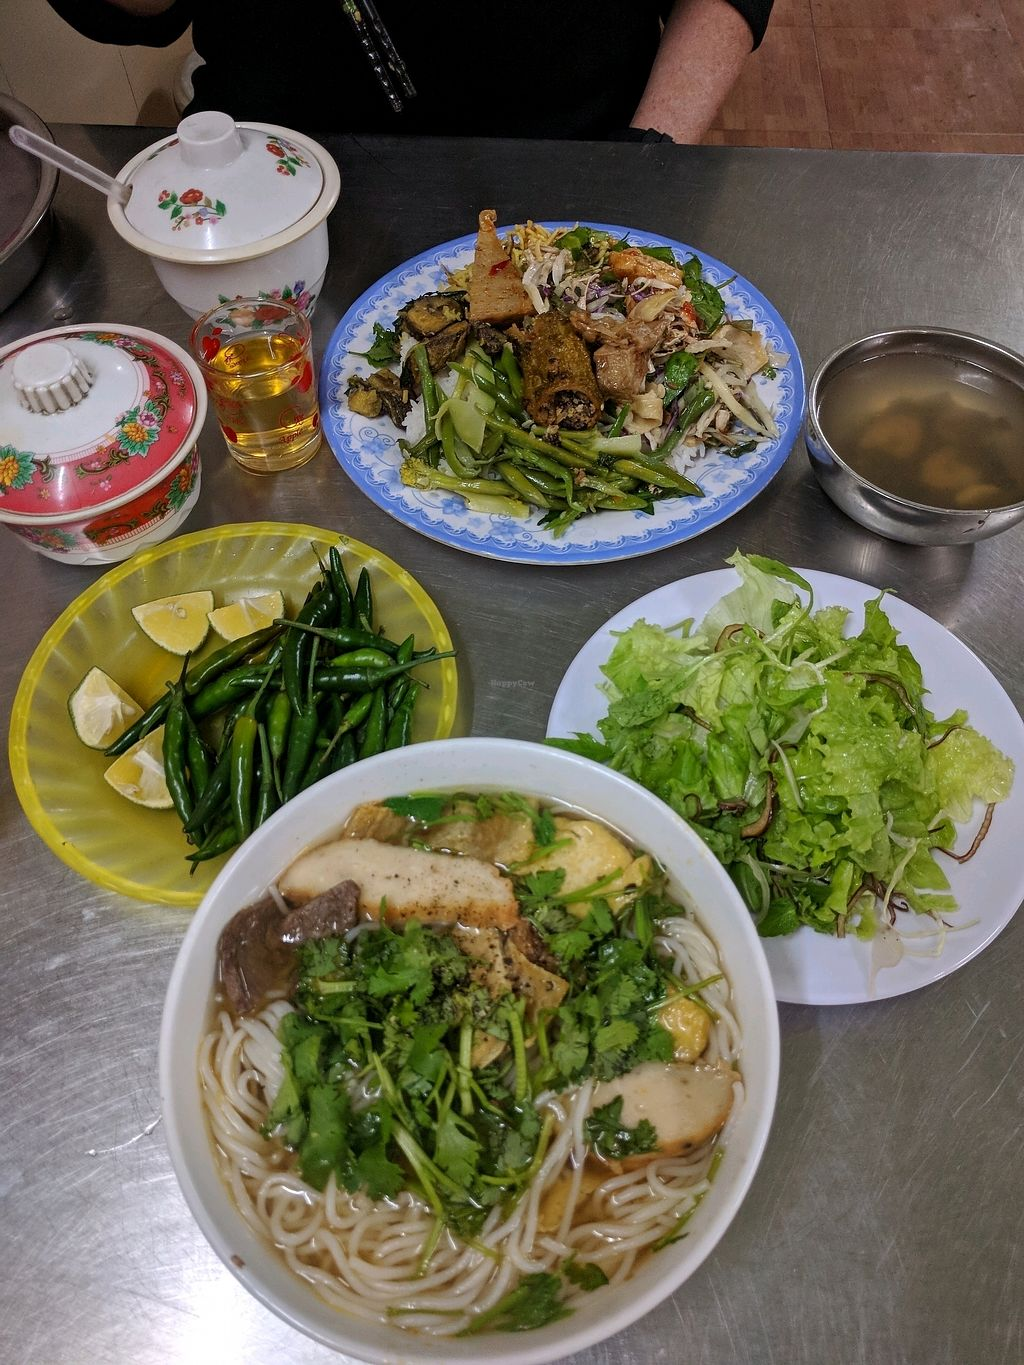 """Photo of Thien An  by <a href=""""/members/profile/mikeandsunny"""">mikeandsunny</a> <br/>Rice dish & noodle dish <br/> January 16, 2018  - <a href='/contact/abuse/image/70473/347227'>Report</a>"""